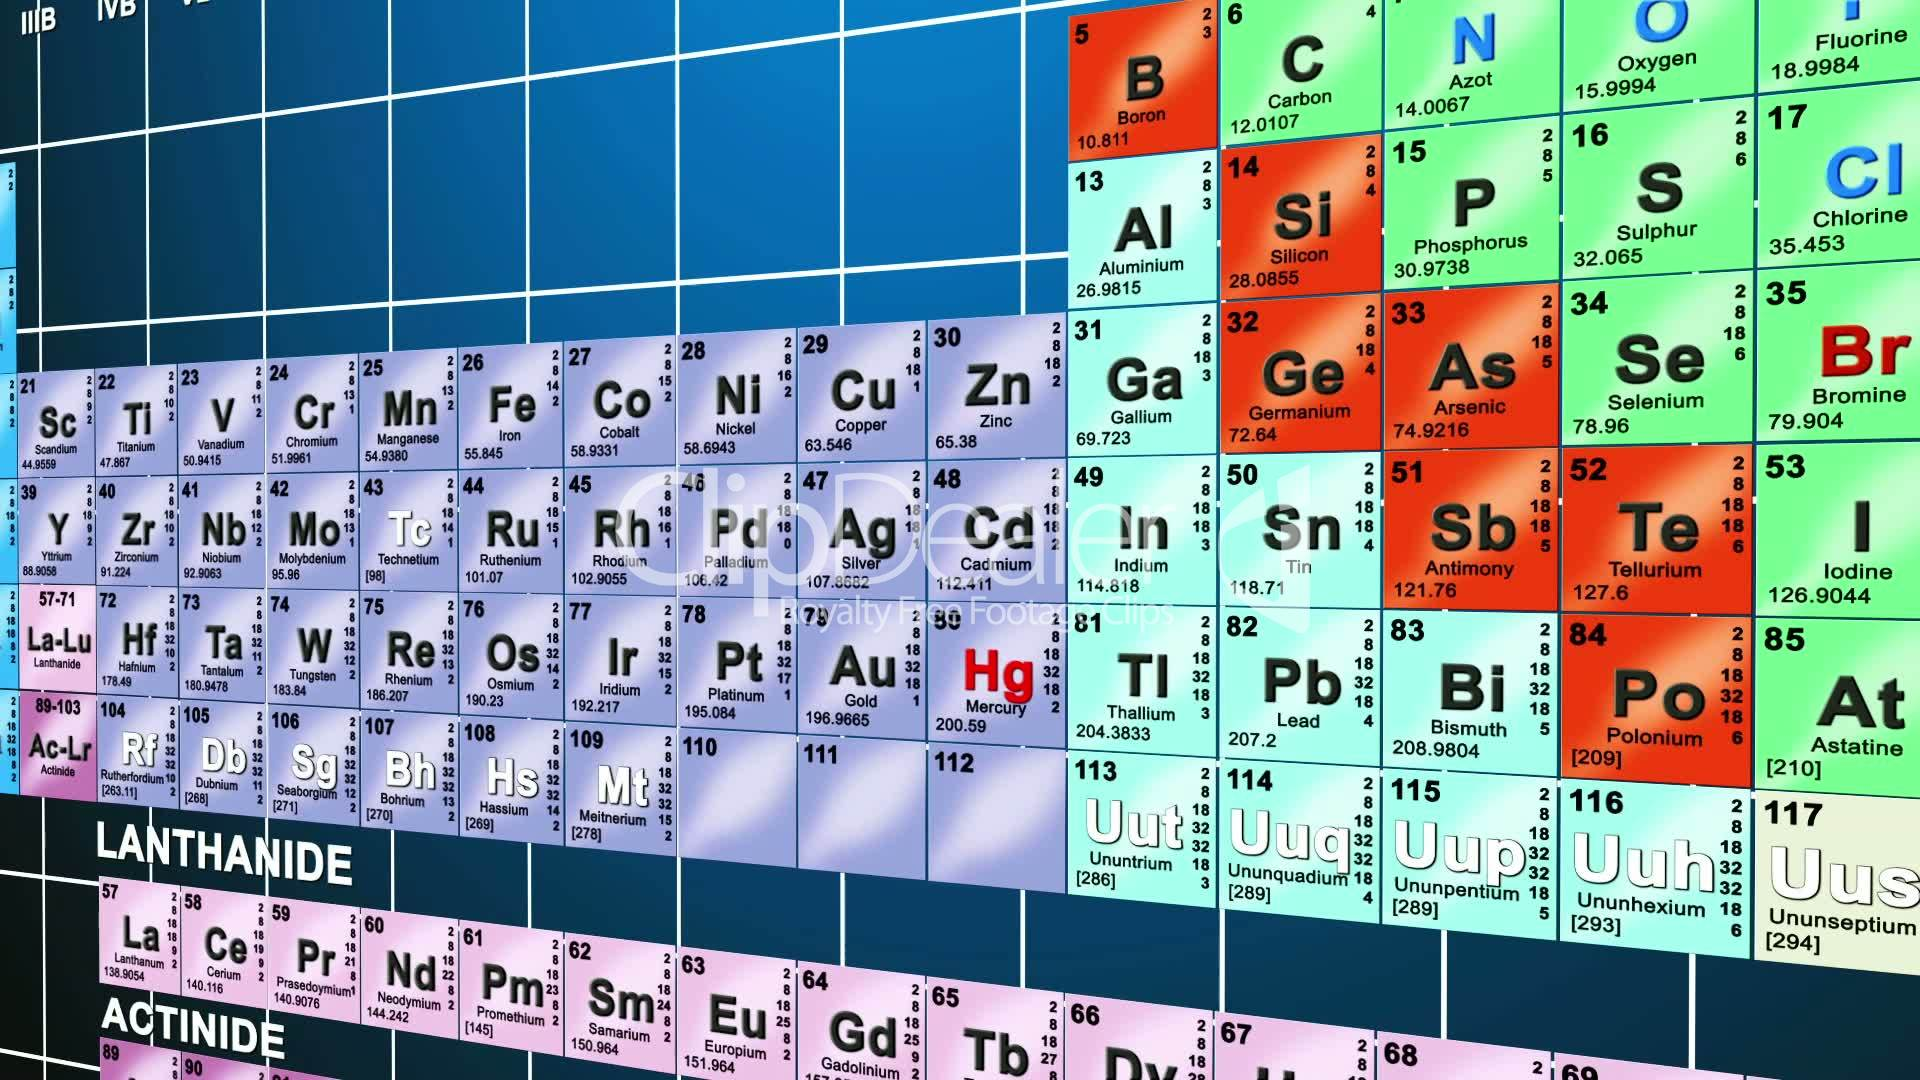 Silver on the periodic table images periodic table images silver on the periodic table images periodic table images silver symbol on periodic table choice image gamestrikefo Images